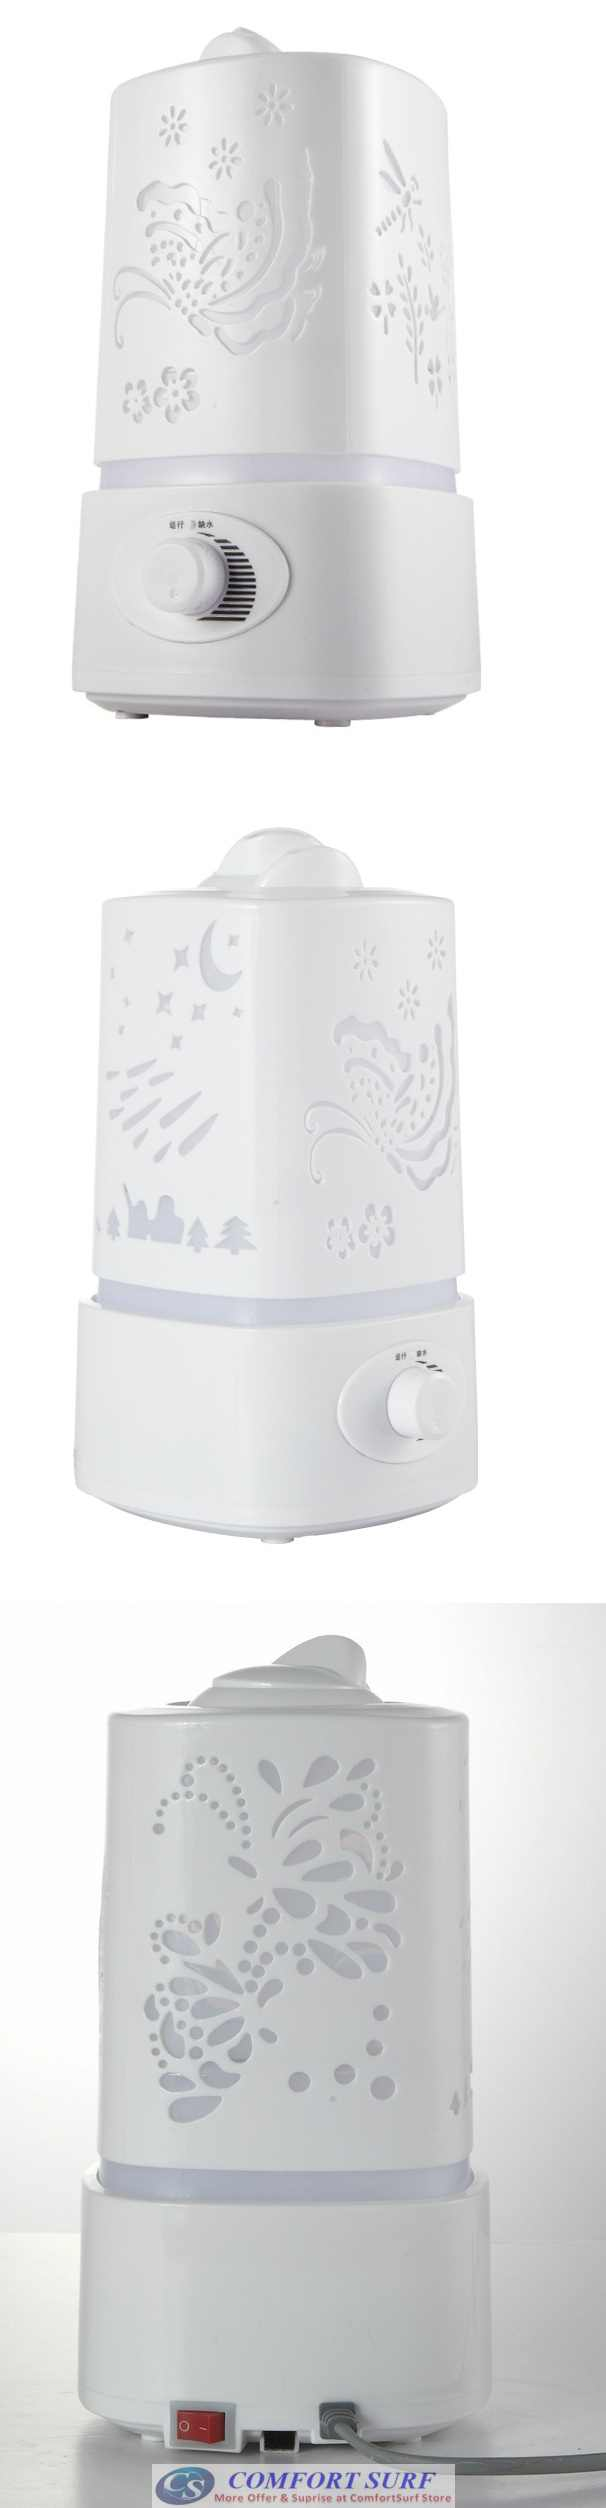 HYUNDAI Ultrasonic Air Purifier Humidifier Aroma Diffuser